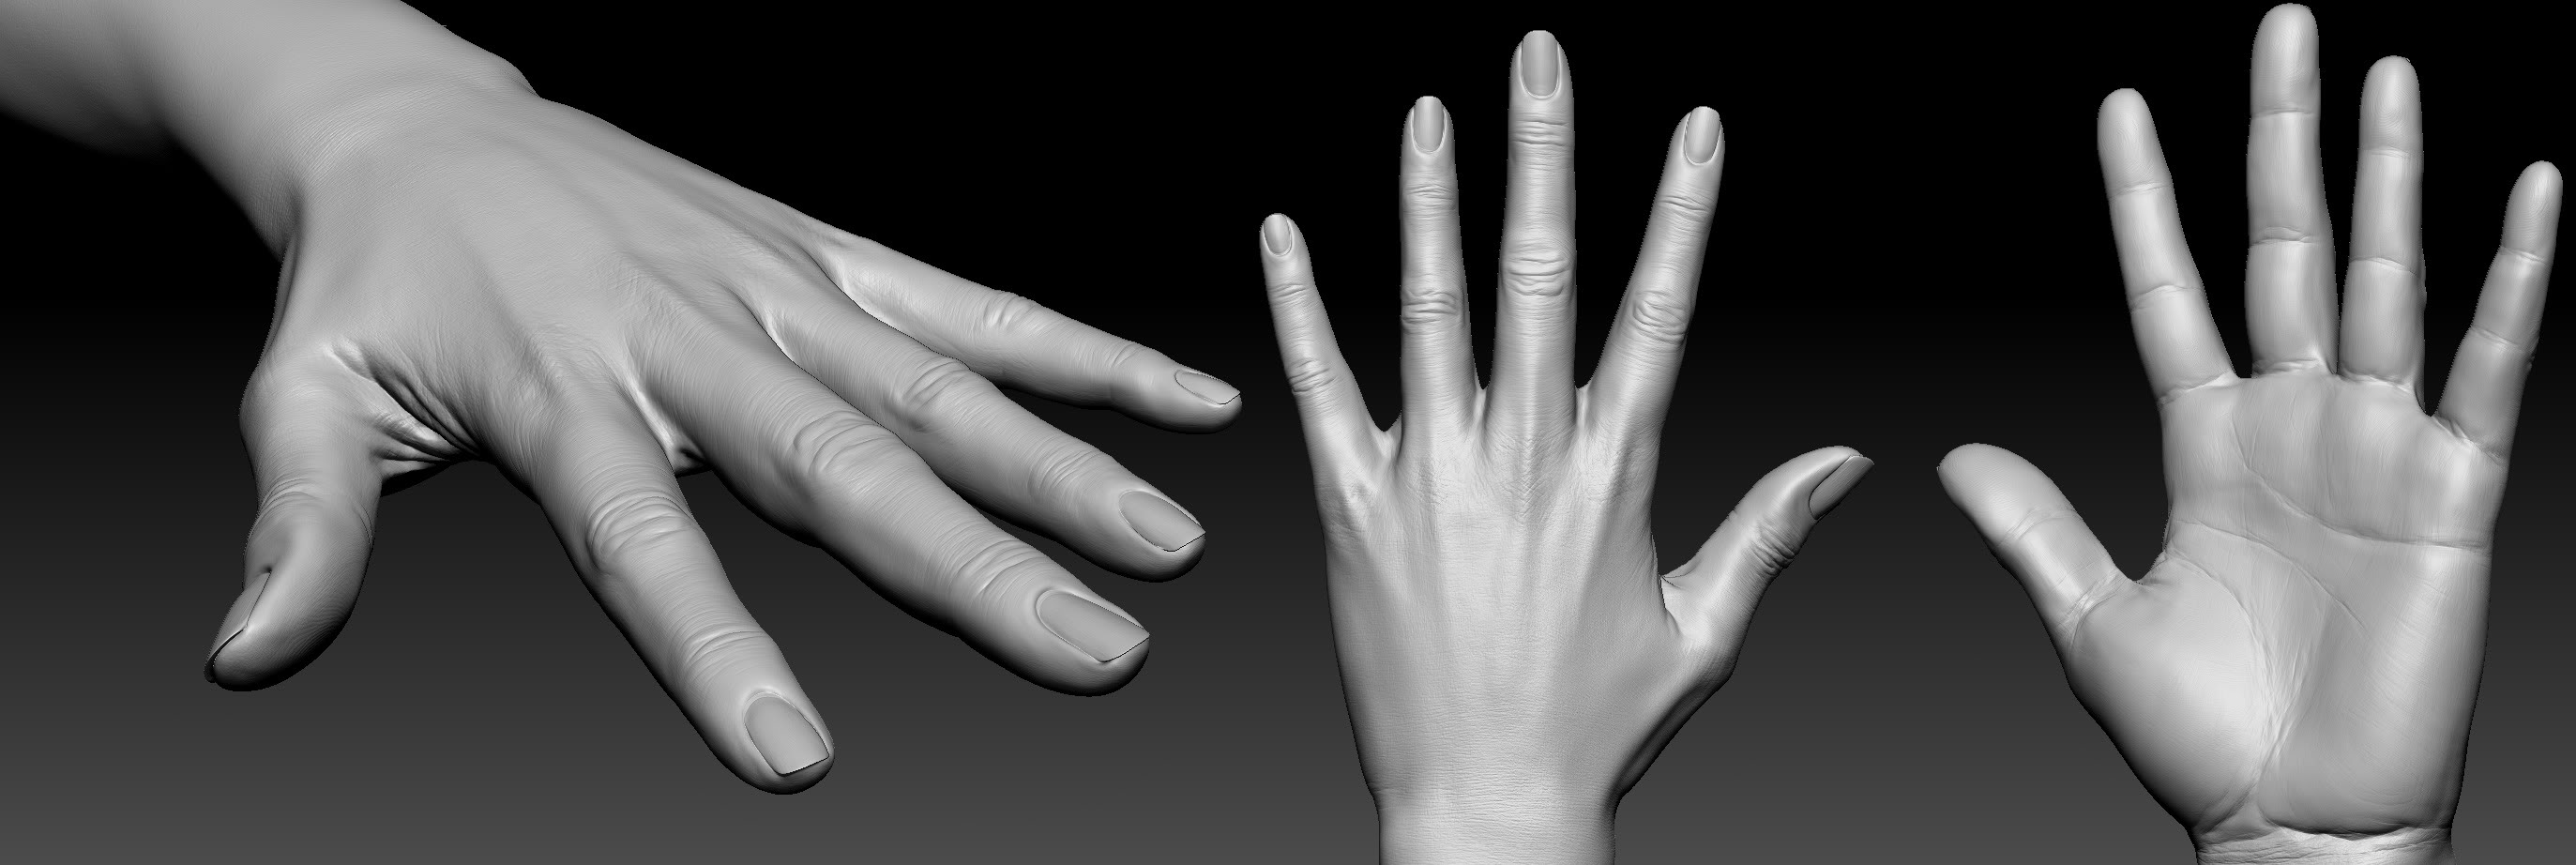 Realistic woman hand by Eugenio Miolo   3D   CGSociety